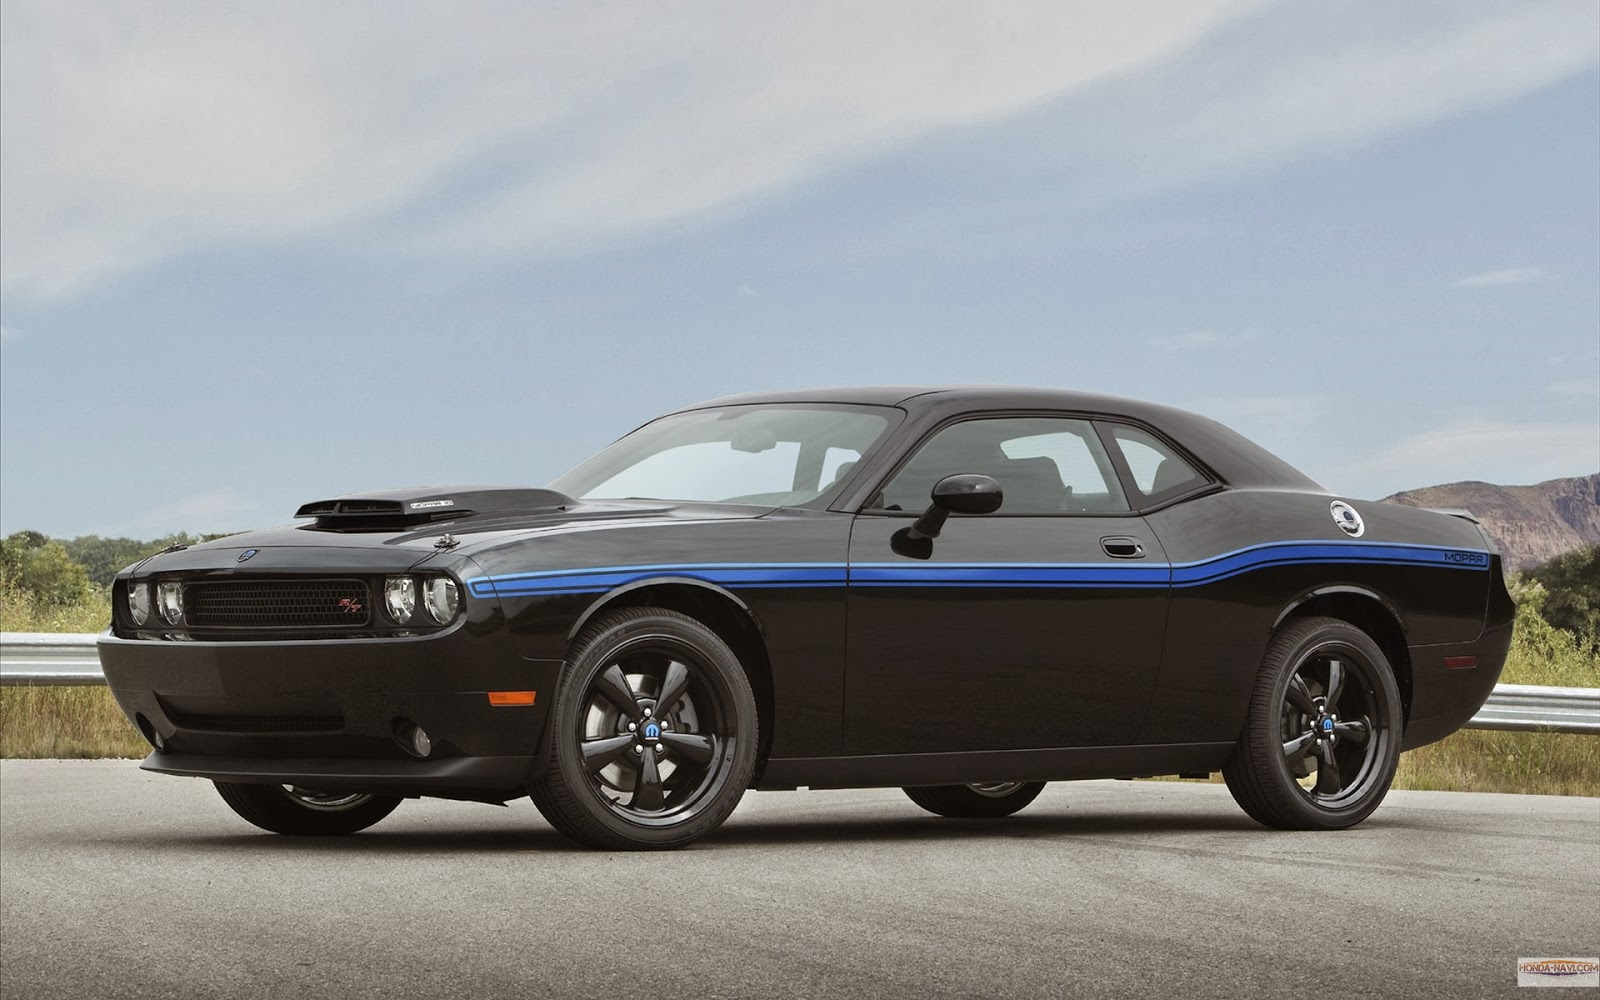 HD Wallpapers Dodge Mopar Underground Challenger Wallpapers 1600x1000